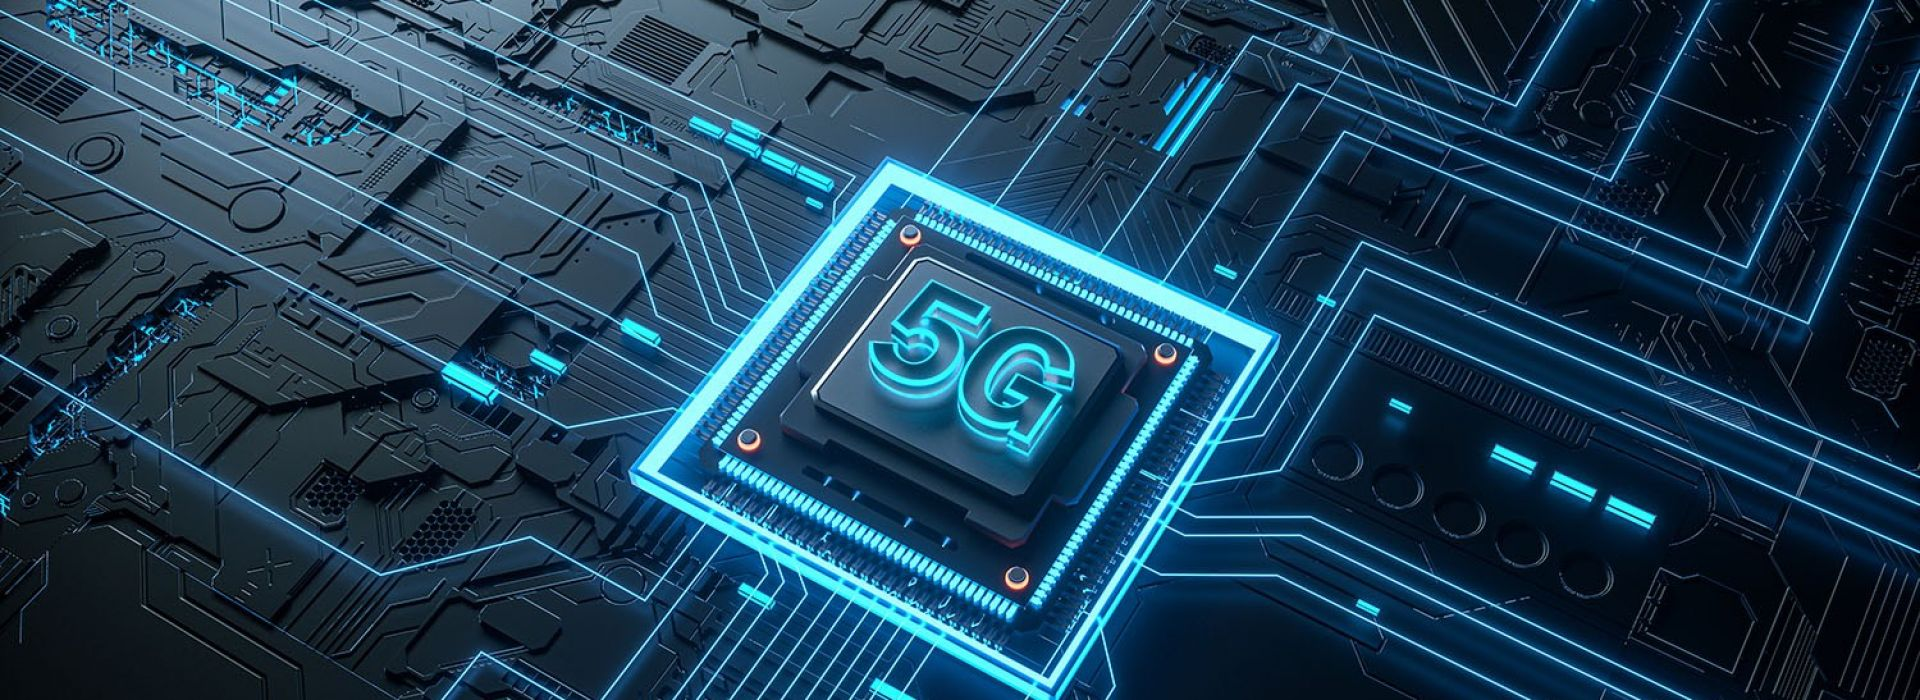 Let us introduce you into 5G Technology